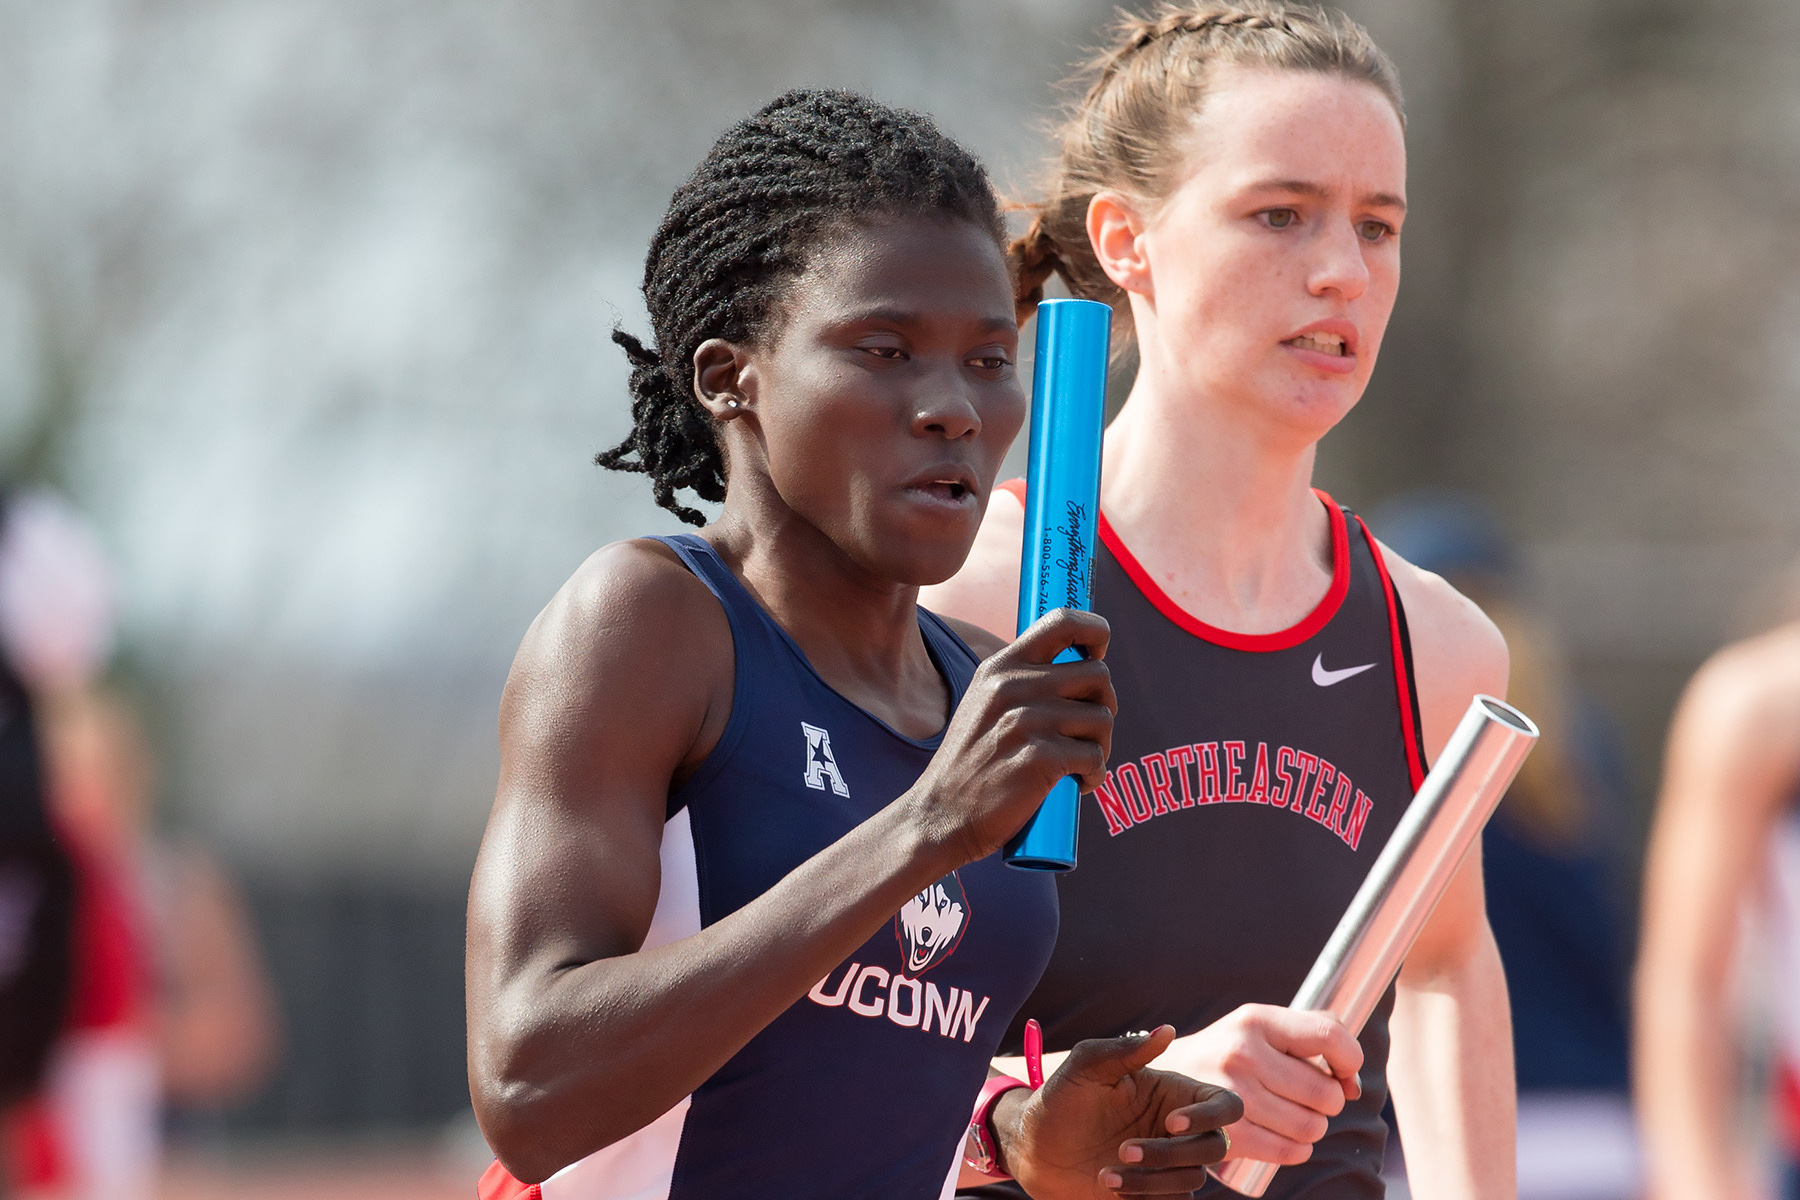 Sophomore Susan Aneno is traveling this week to Eugene, Ore. to compete in the NCAA Division I Outdoor Track and Field Championships. (J.J. Clark/UConn Photo)